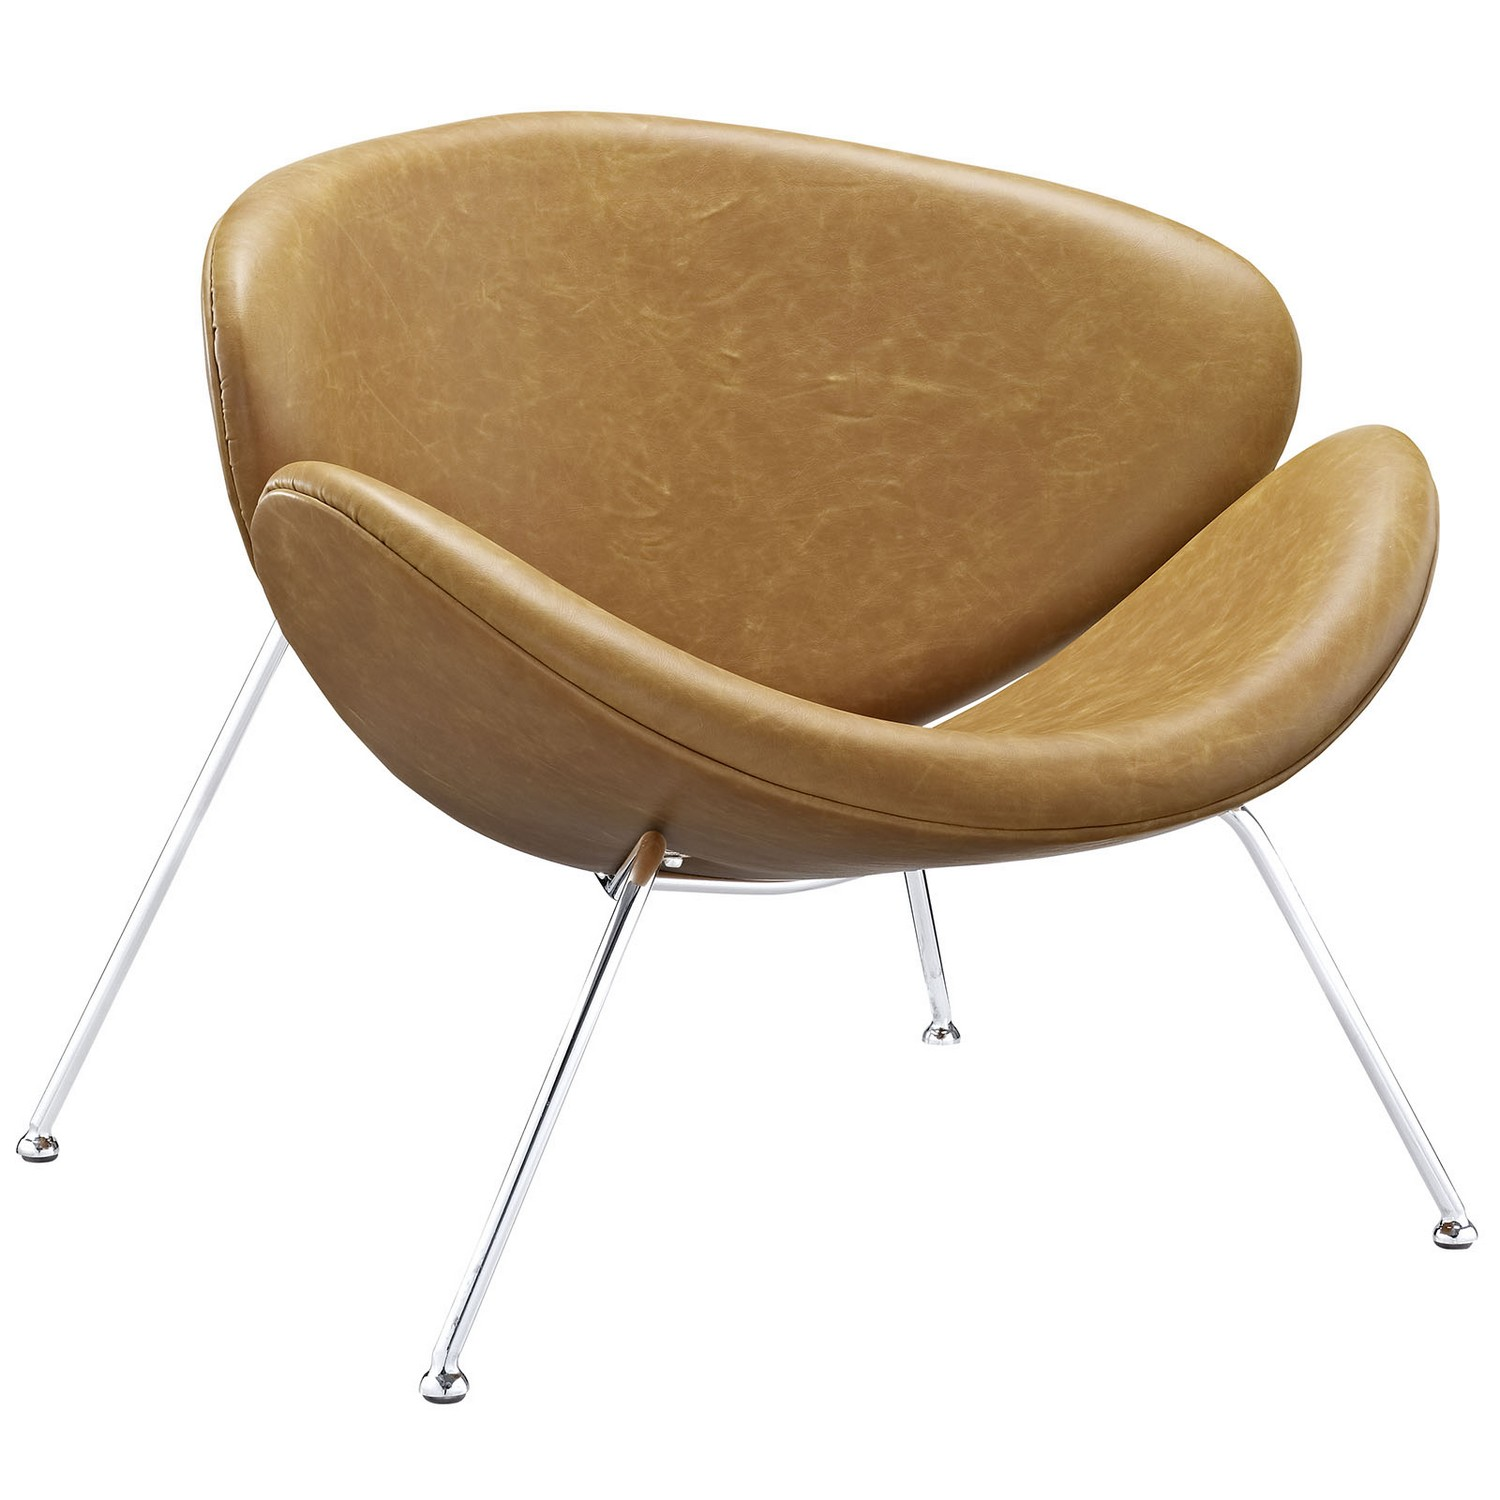 Modway Nutshell Lounge Chair - Tan